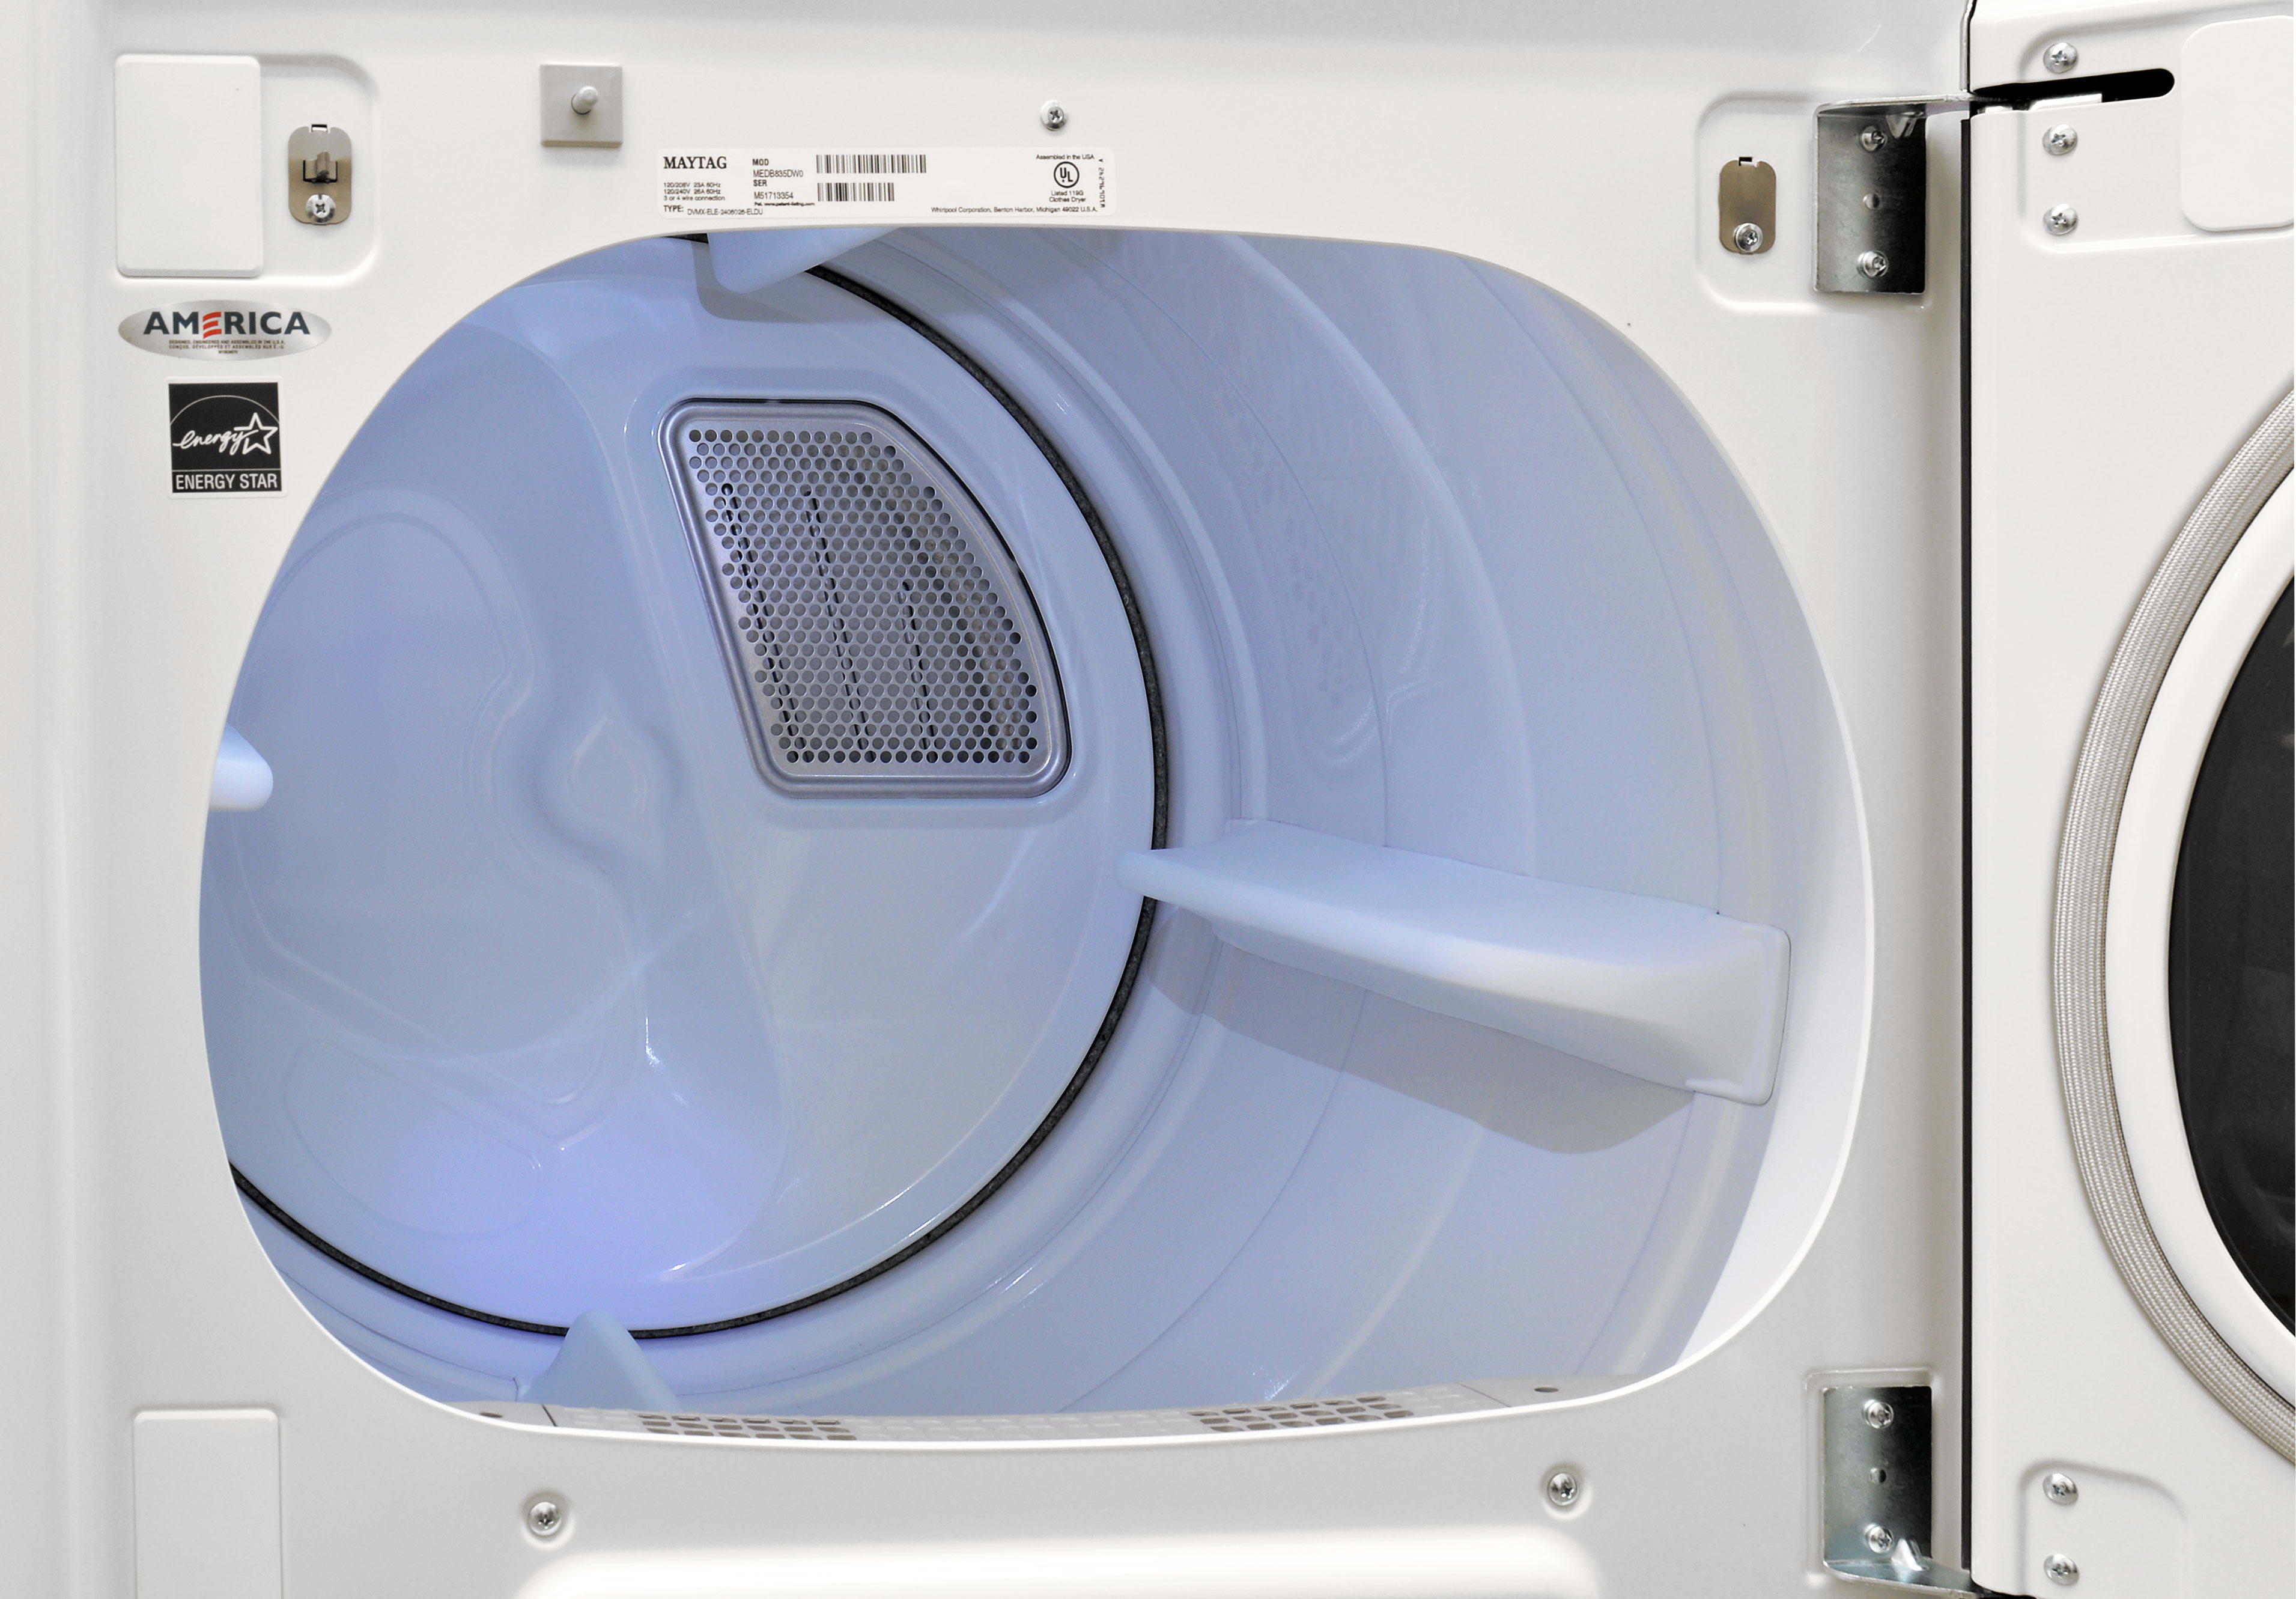 White drums are common in this price point, but the Maytag Bravos MGDB835DW's light is a nice inclusion.